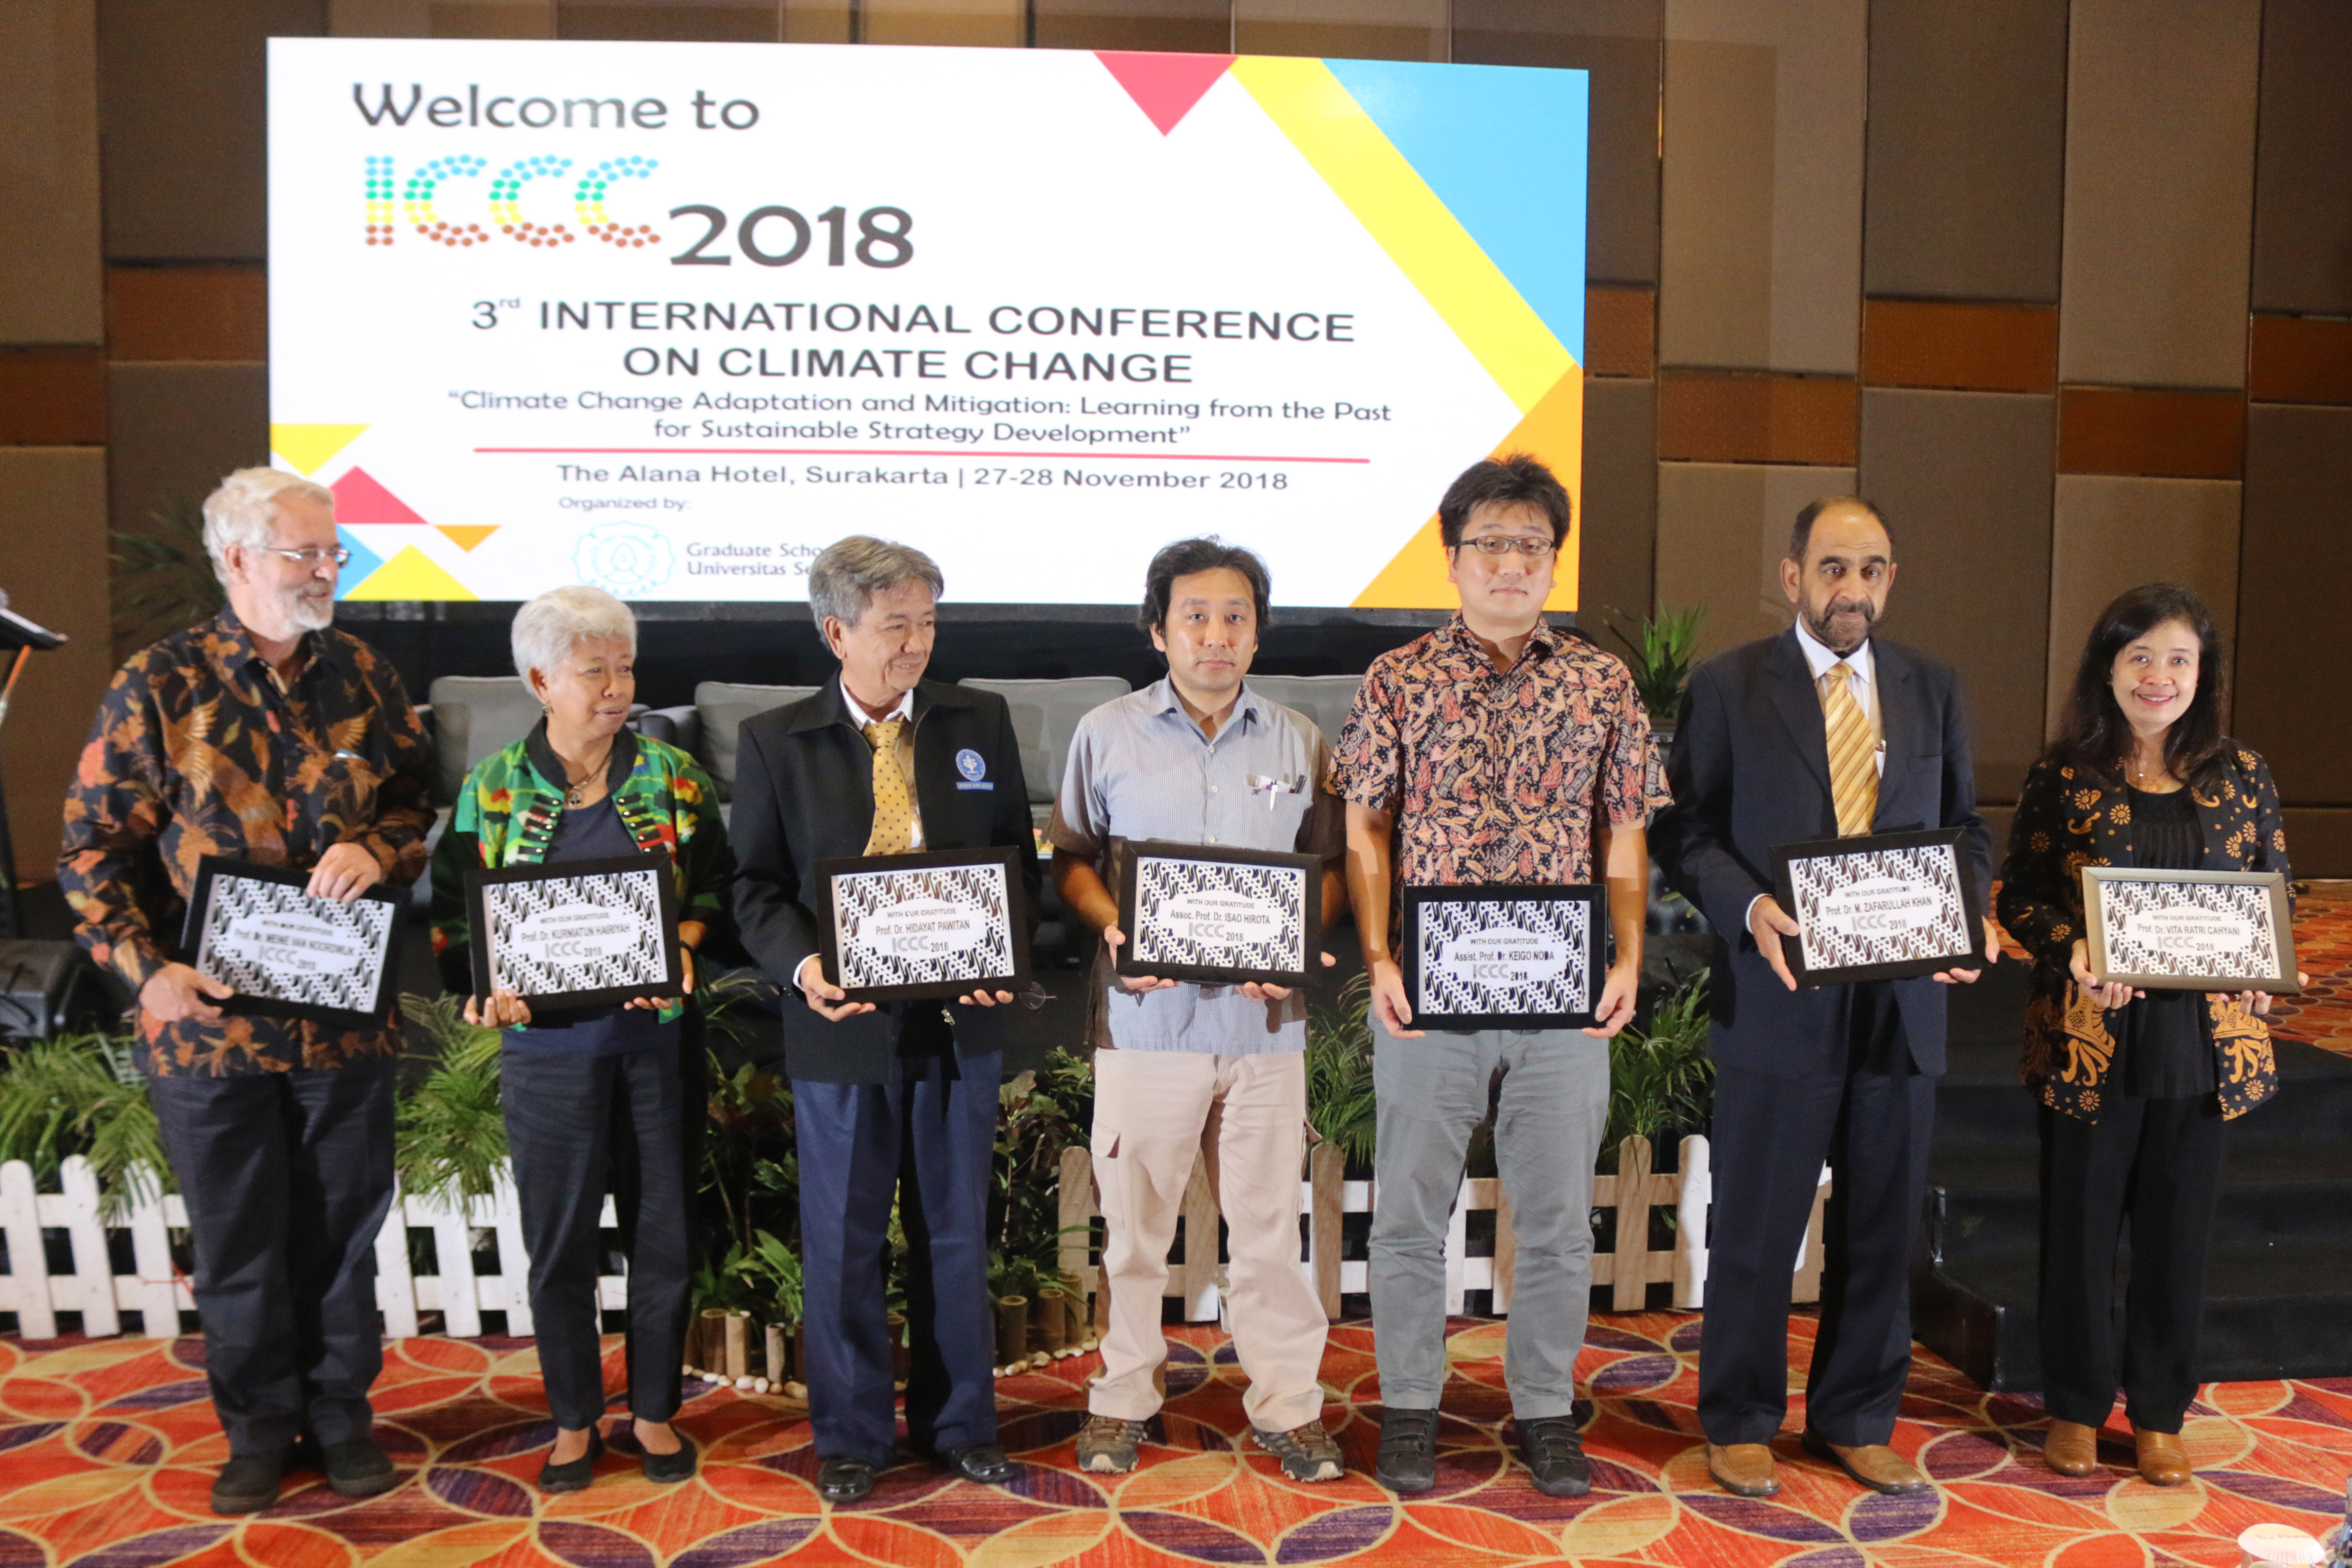 Giving Souvenir from Committee ICCC to Speakers